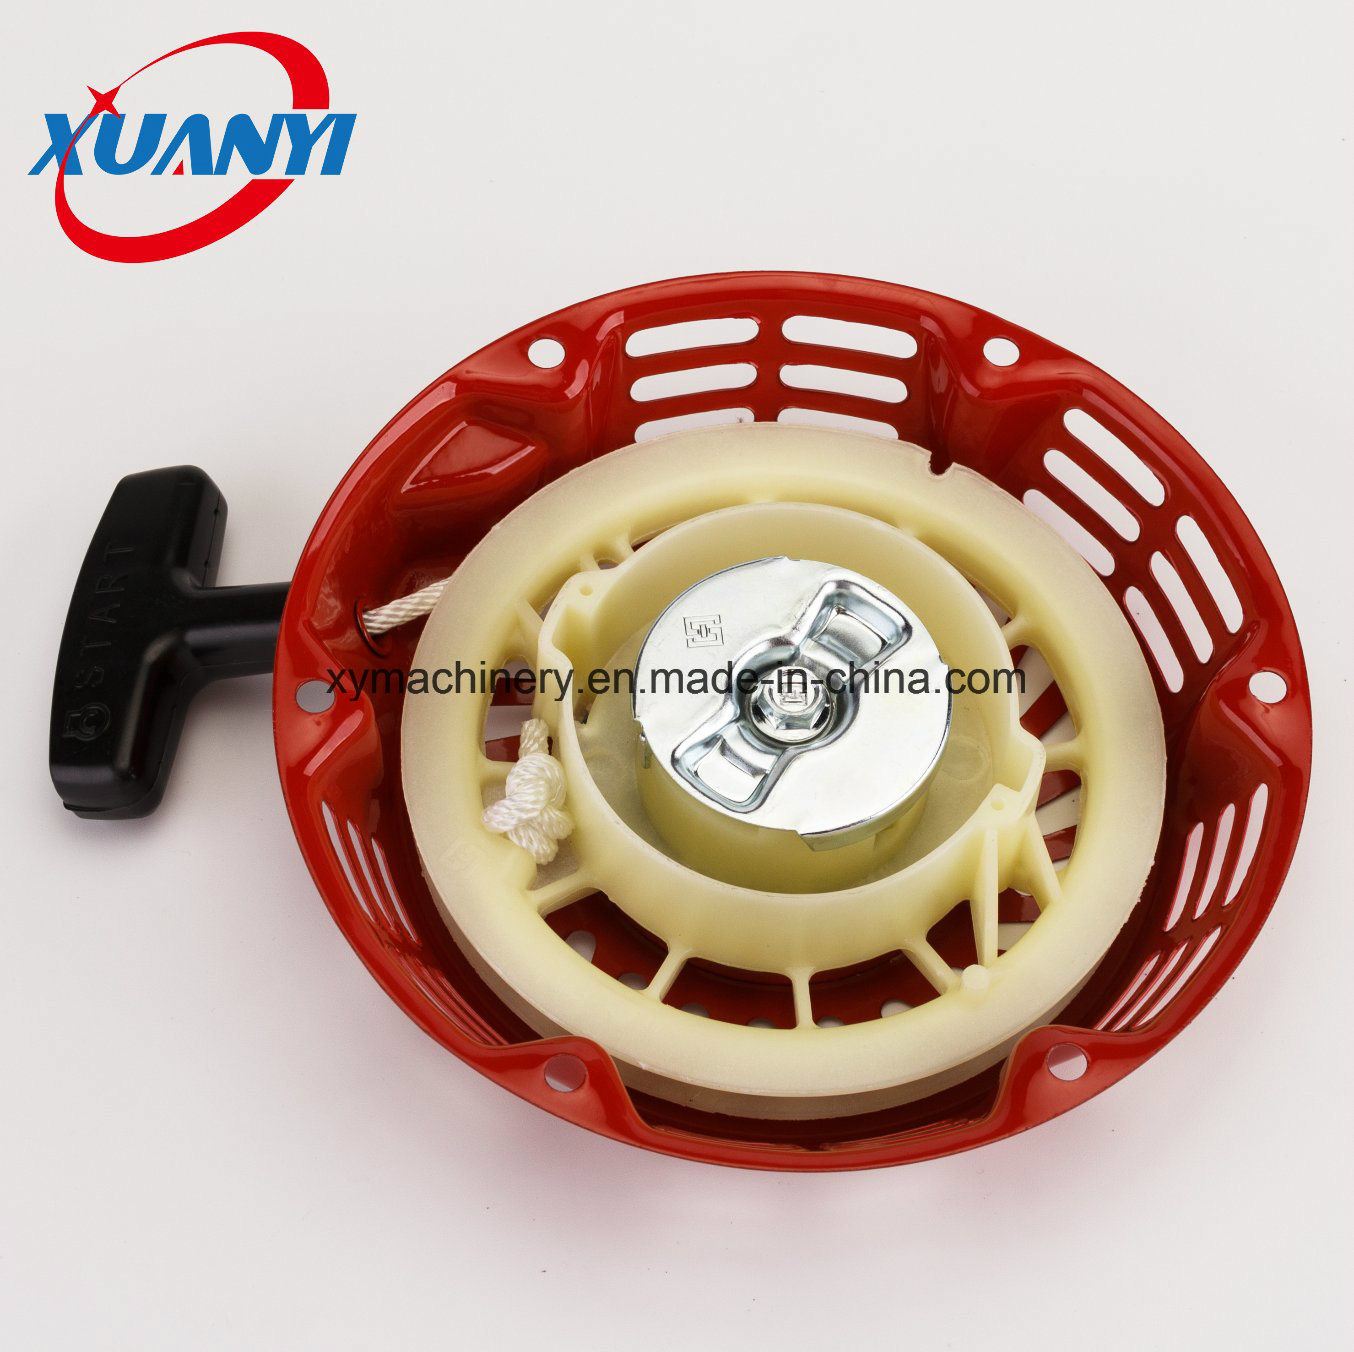 6.5HP 168f Generator Engine Parts Recoil Starter for Gx160 Gx200